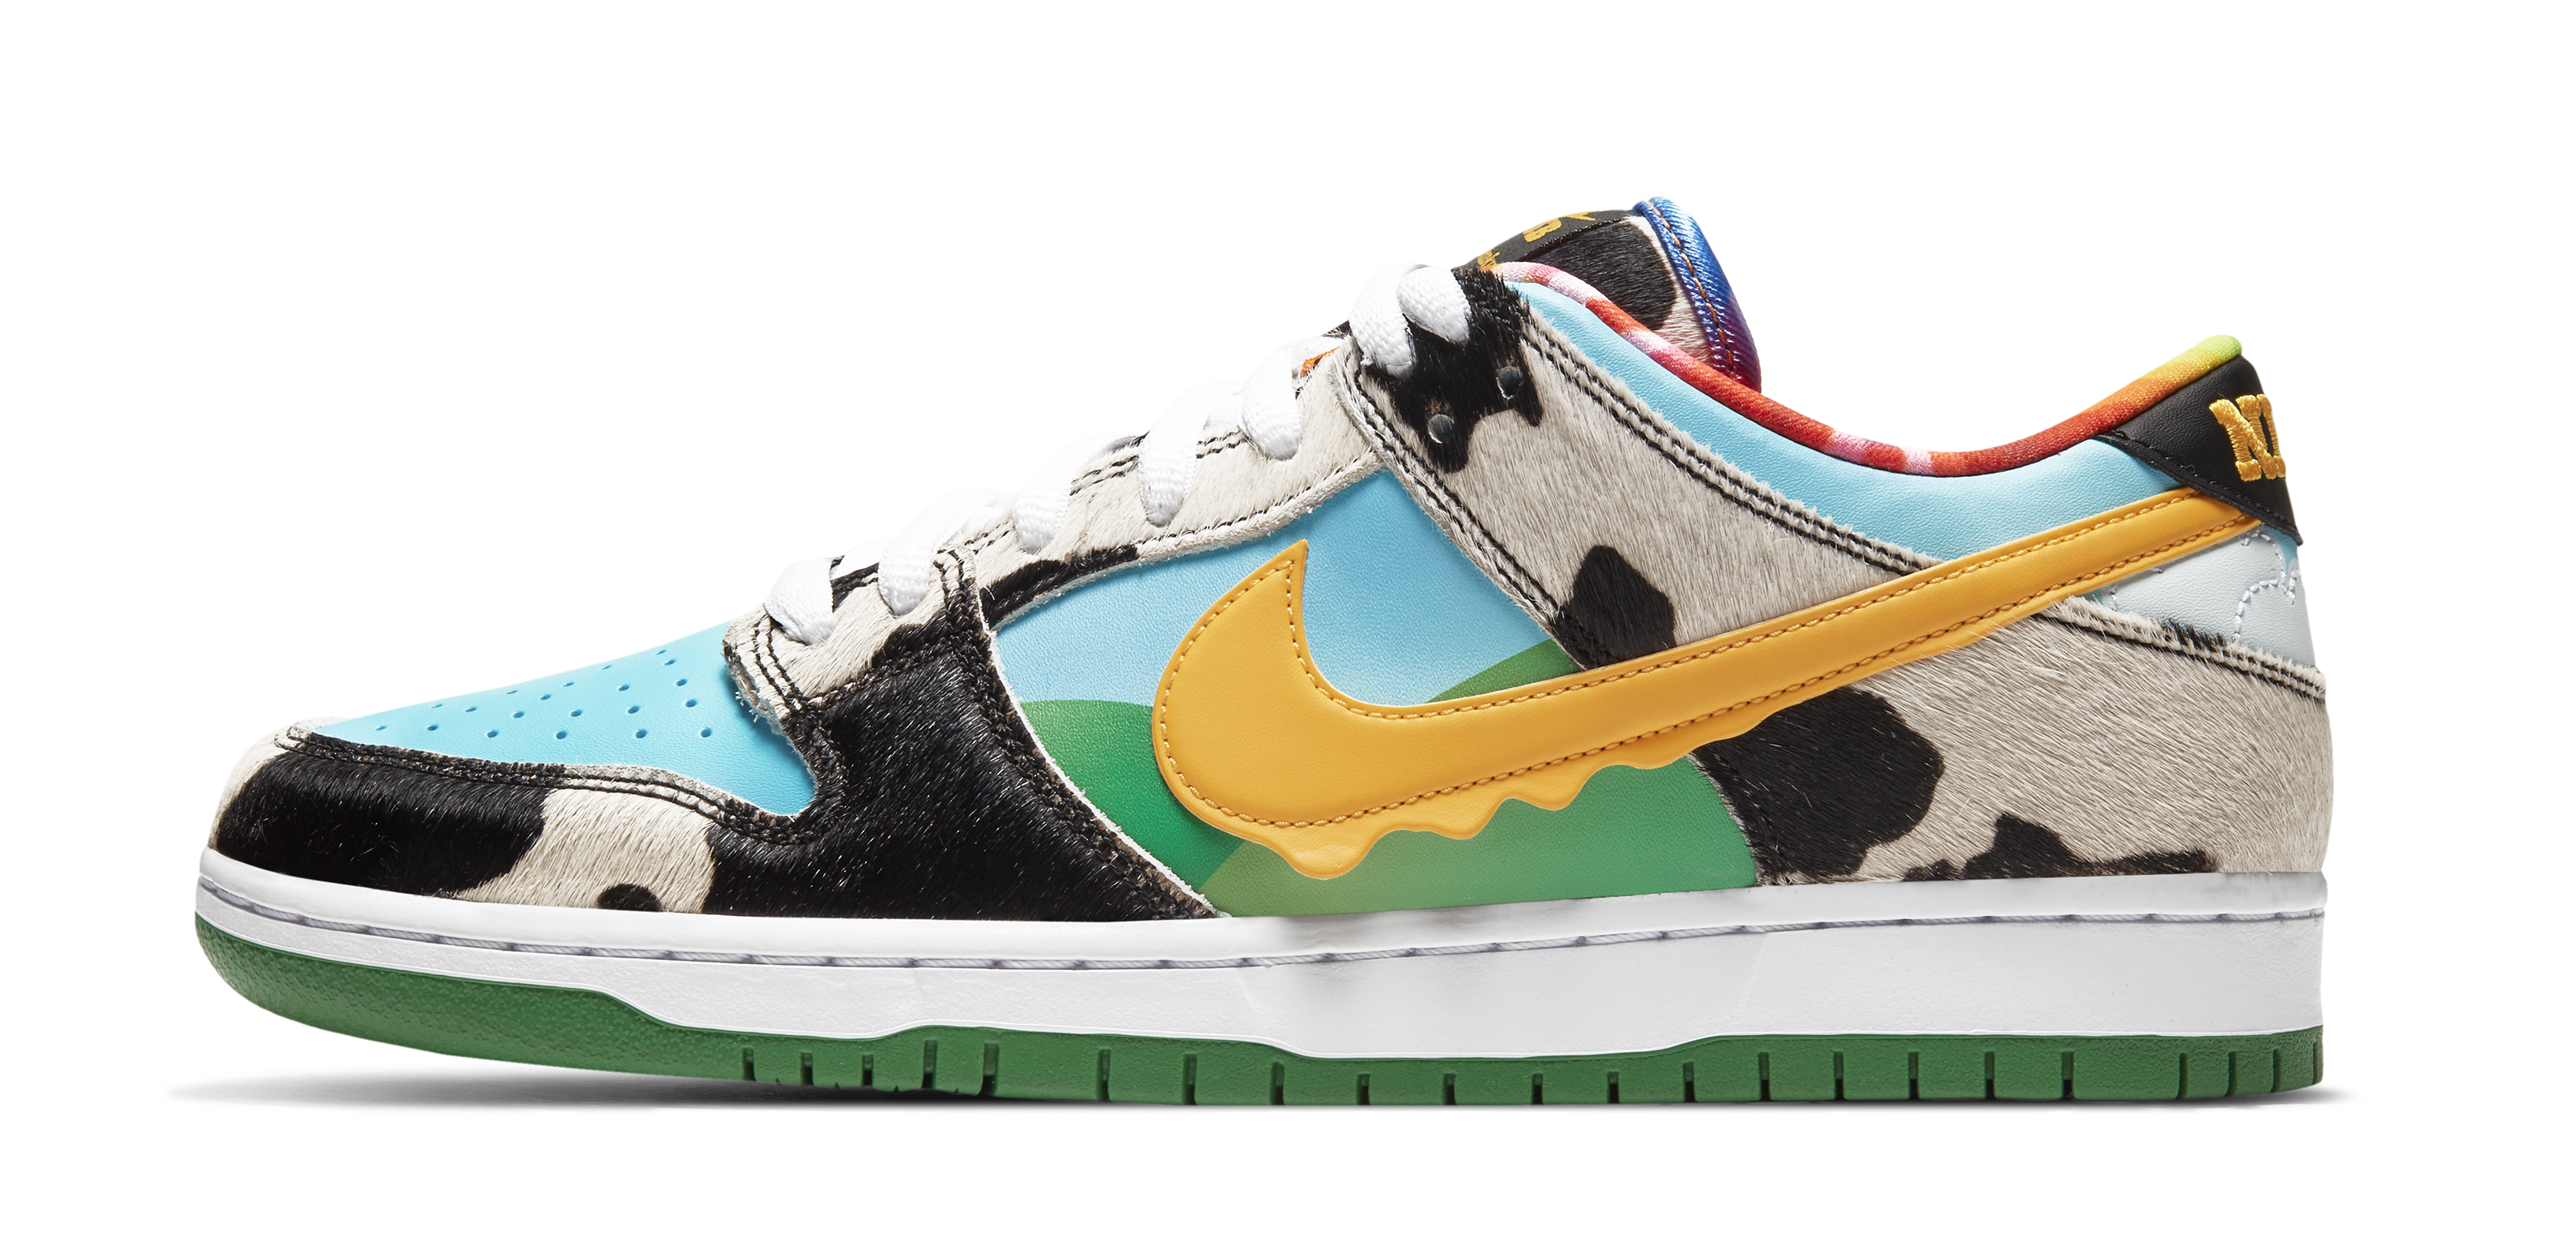 Nike SB Dunk Low x Ben & Jerry's Collaboration Confirmed